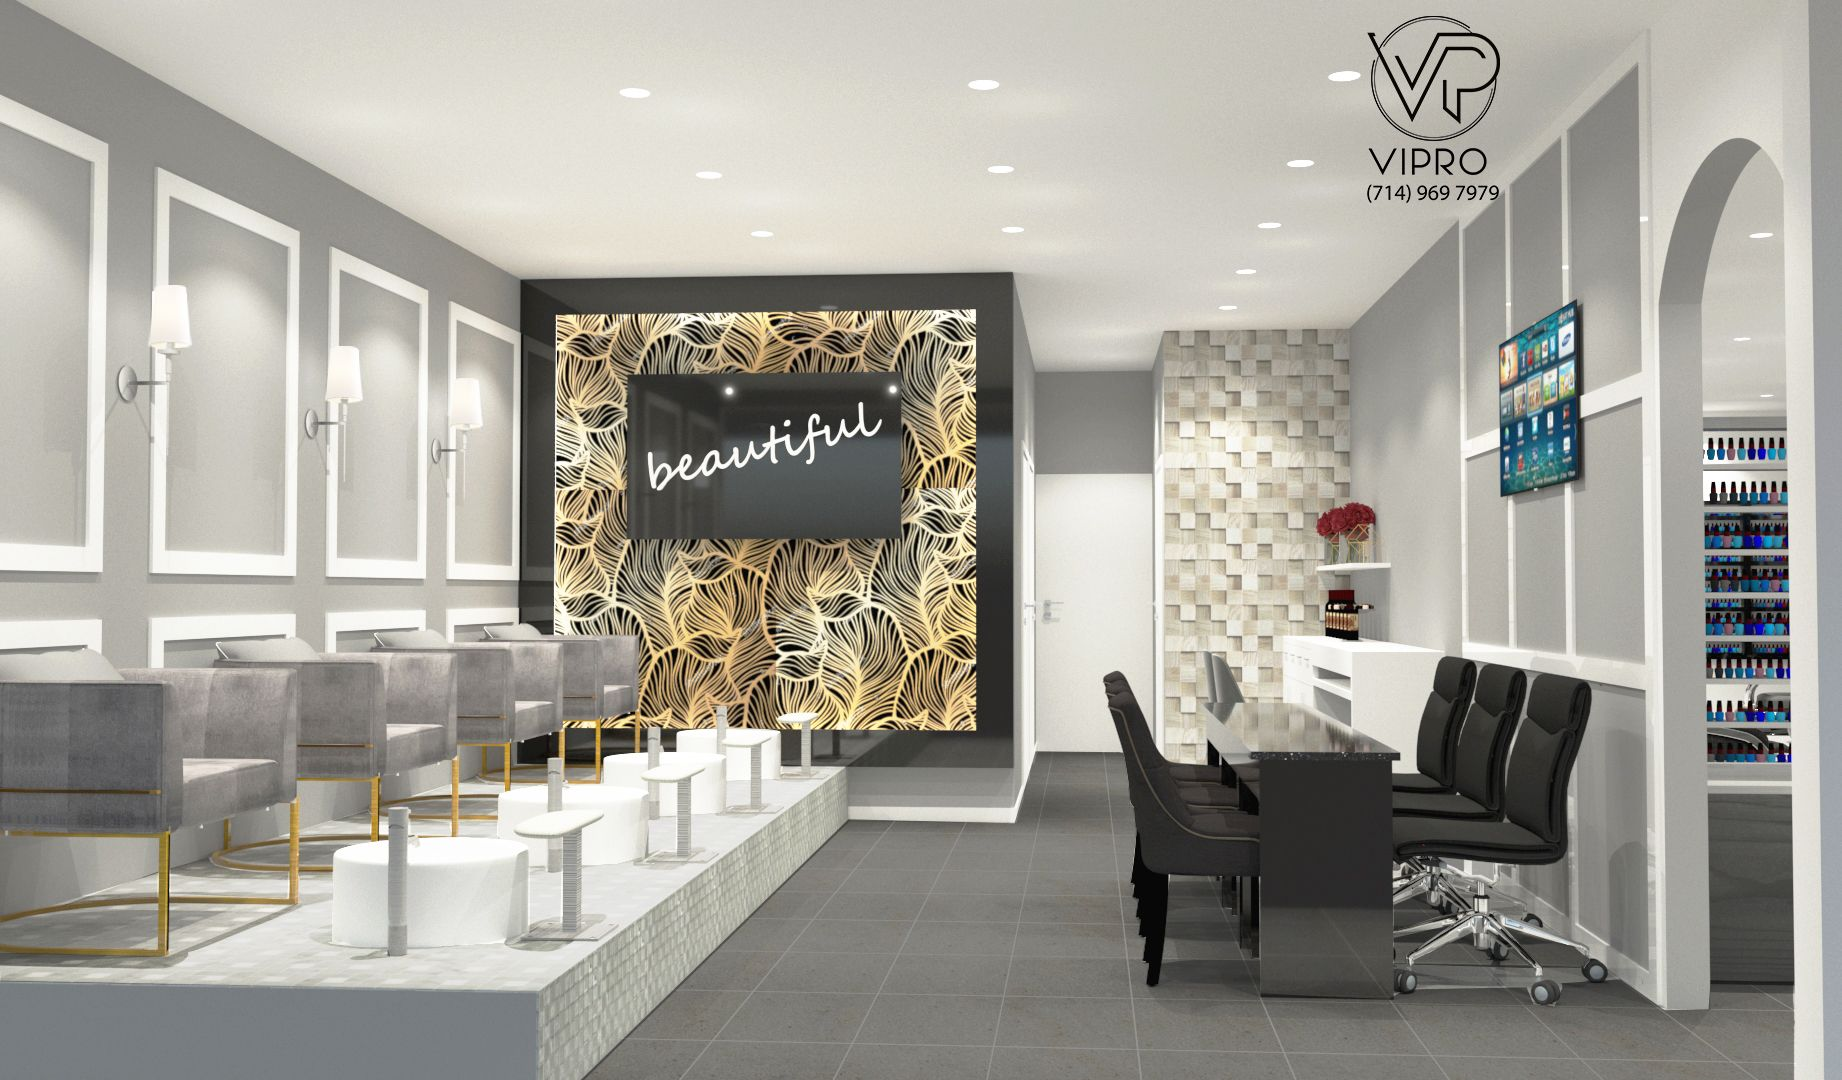 Come to VIPRO and upgrade your salon Contact: (19)-19-19